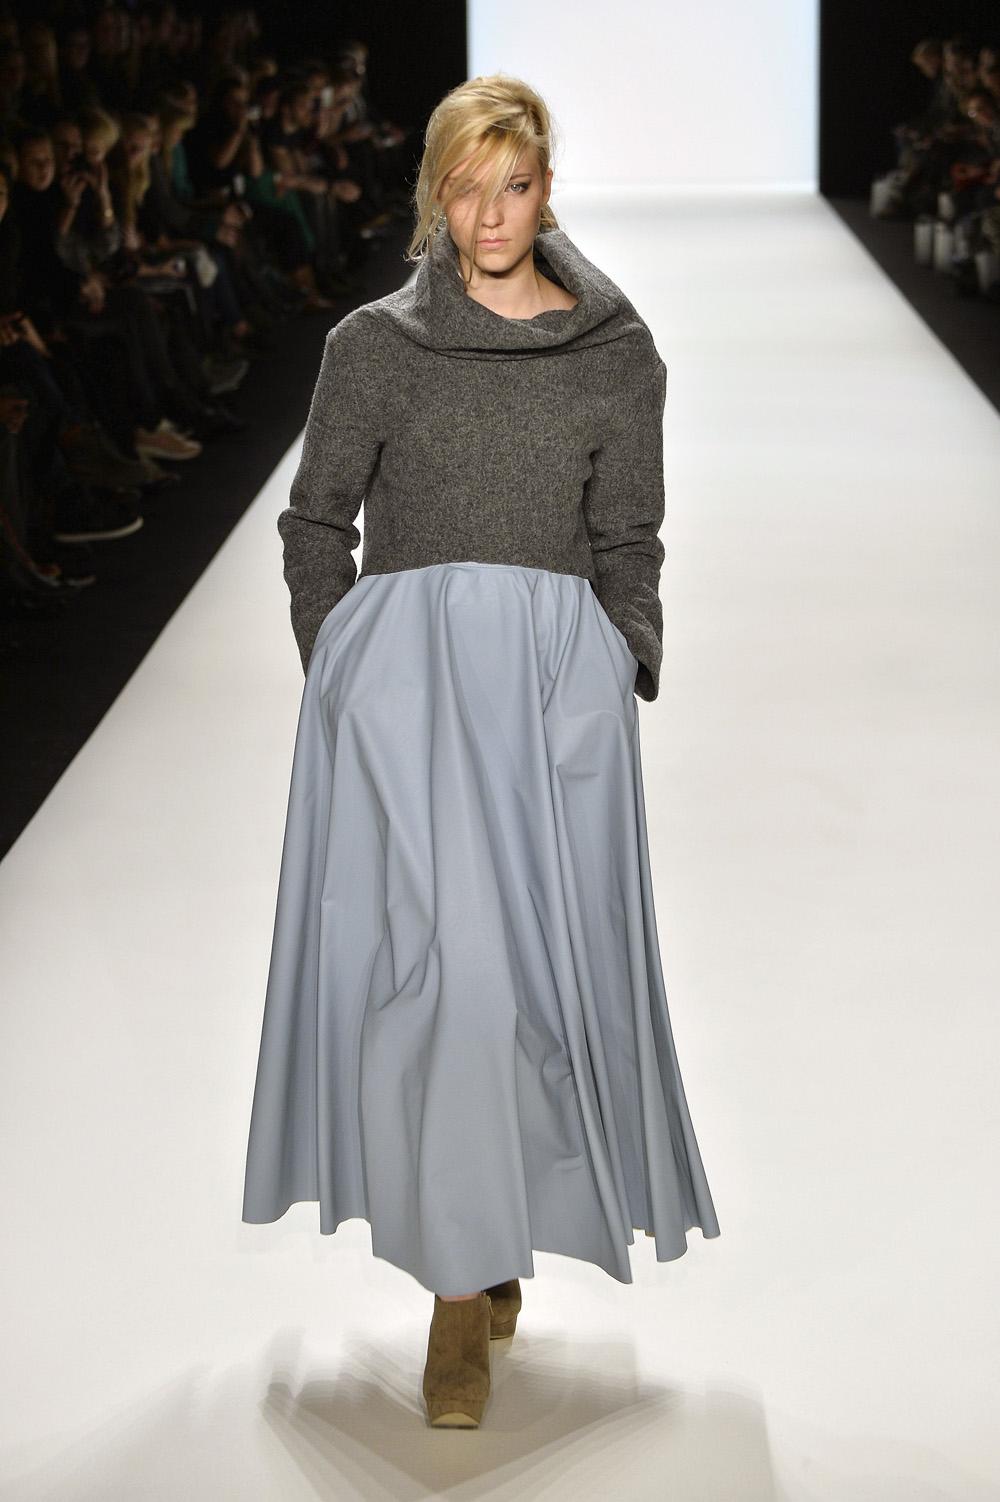 Barre Noire Show - Mercedes-Benz Fashion Week Autumn/Winter 2014/15